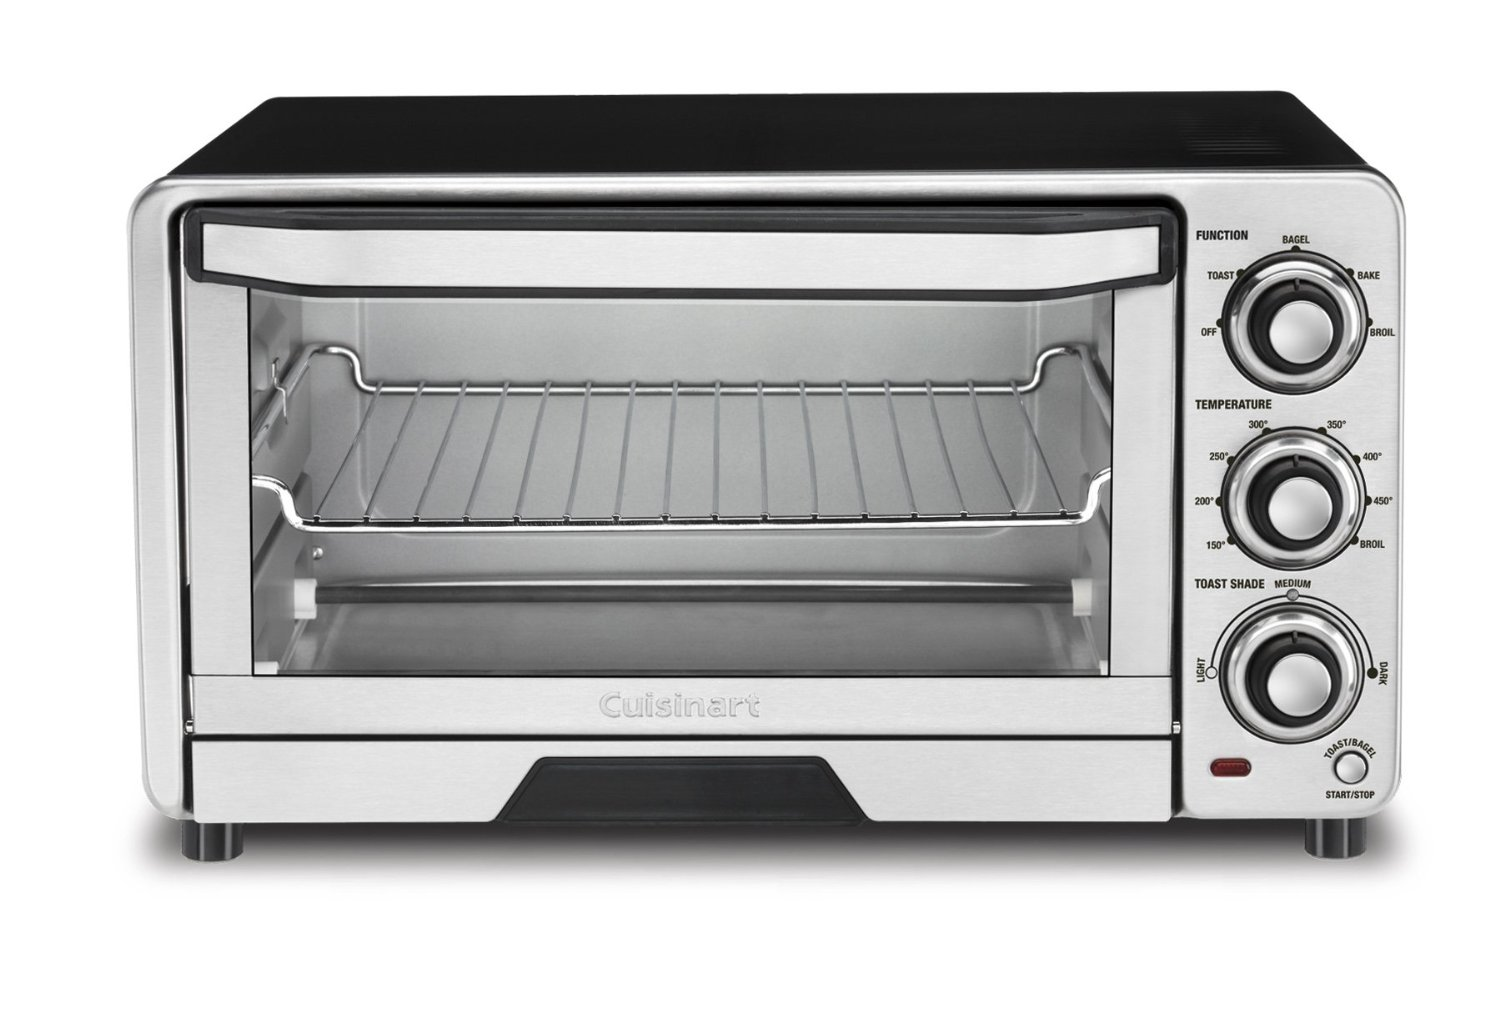 How To Use Convection Oven For Baking Cake